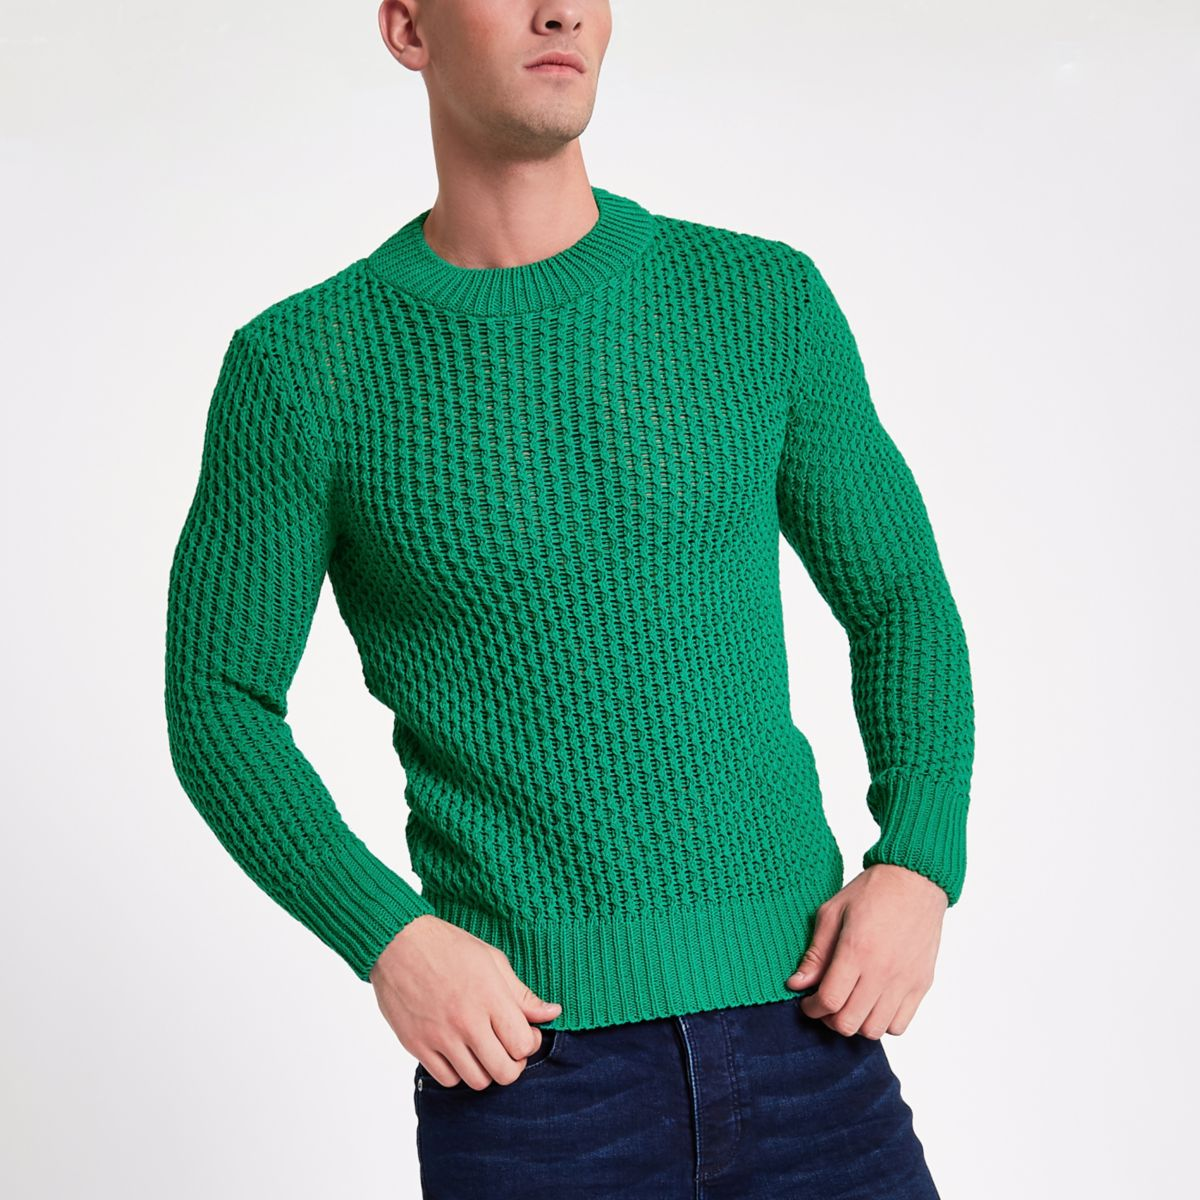 Green slim fit long sleeve knitted sweater